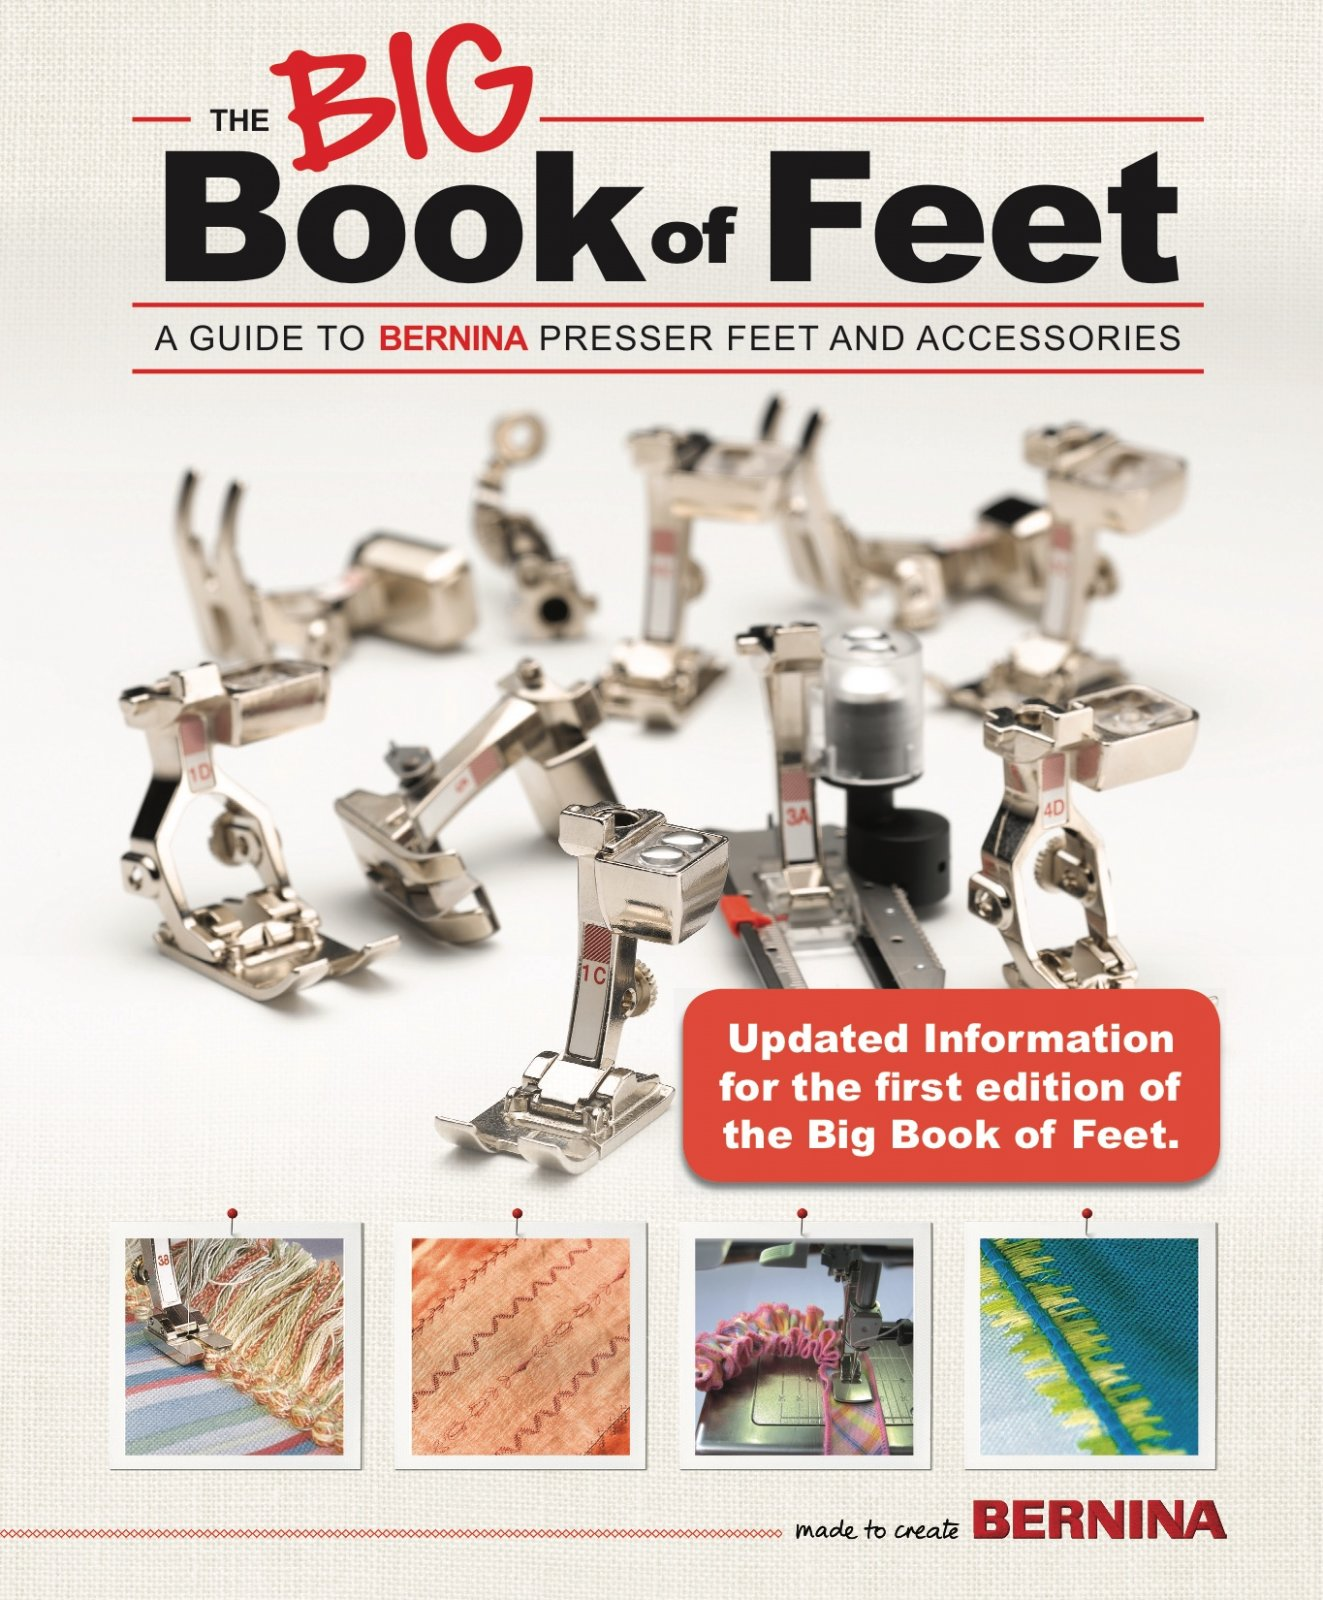 The BIG Book of Feet